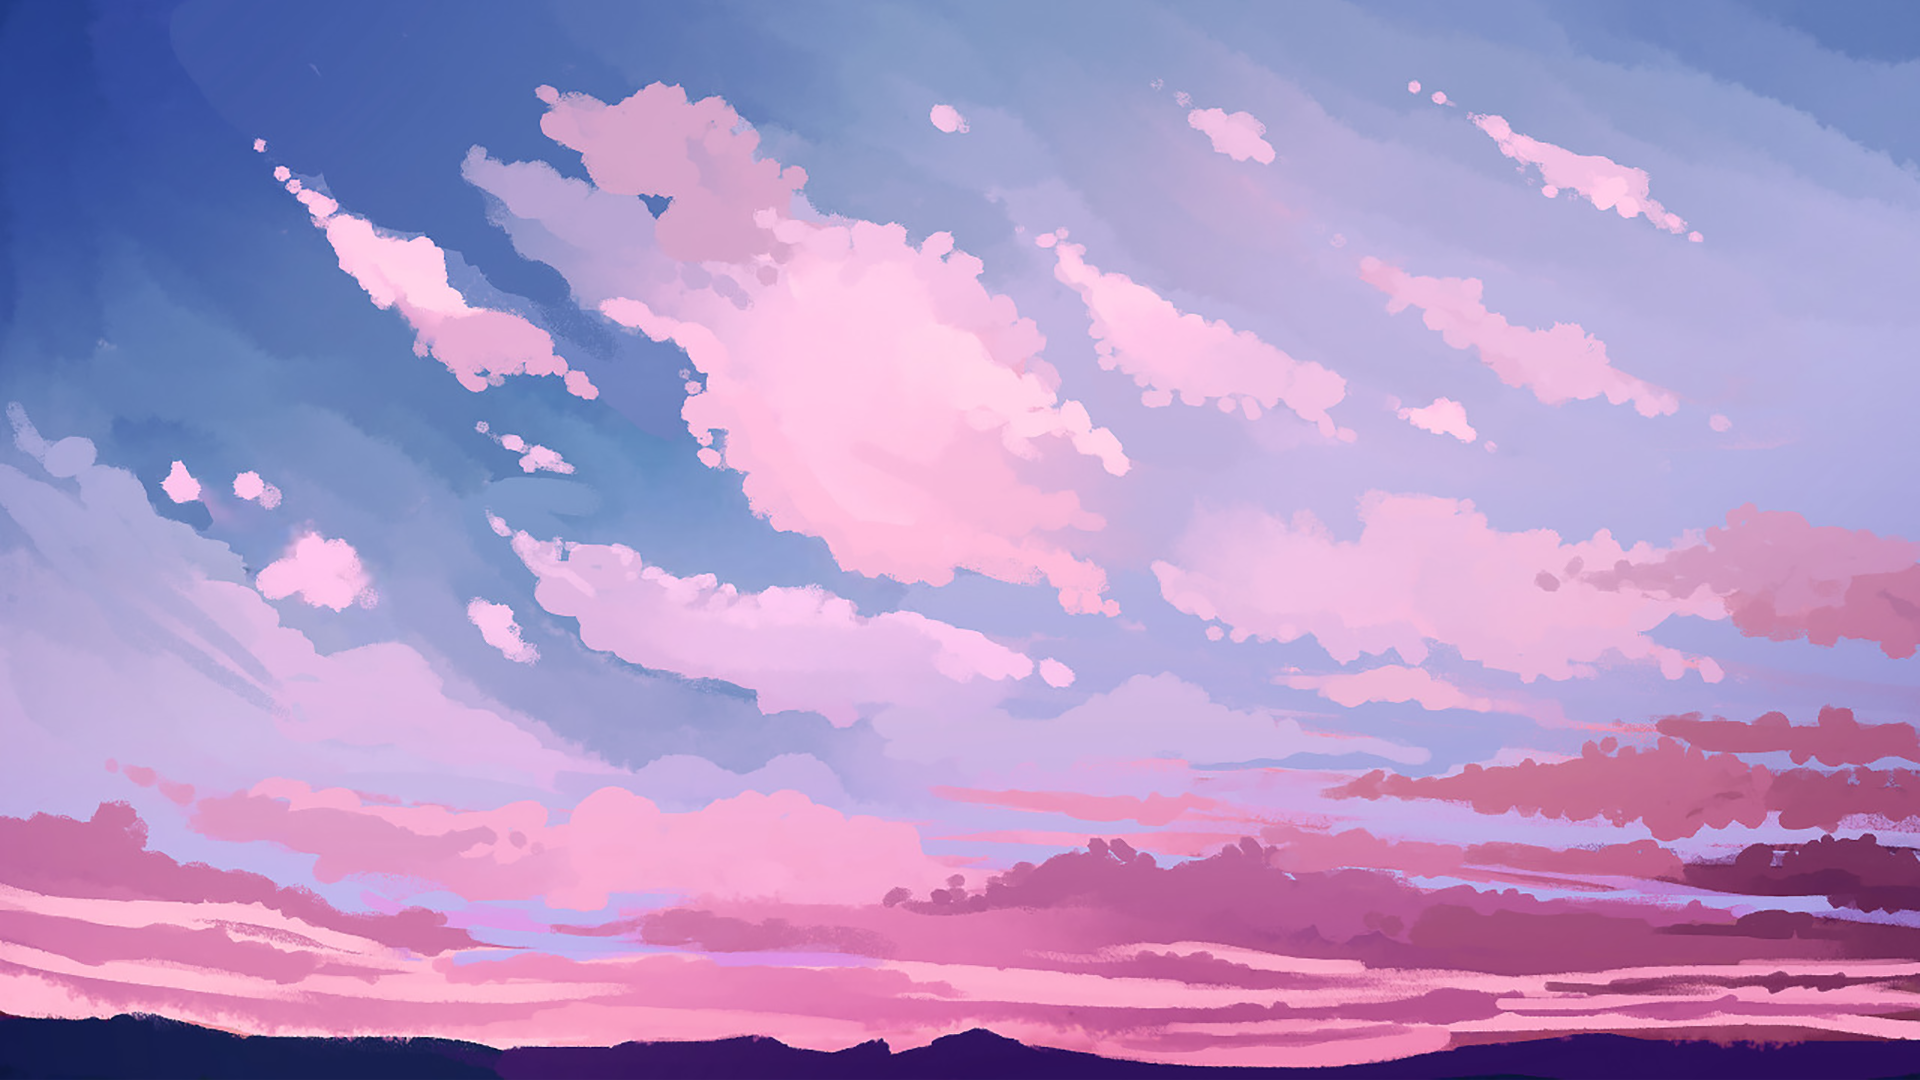 Pink Skies 1920x1080 Desktop Wallpaper Art Aesthetic Desktop Wallpaper Laptop Wallpaper Desktop Wallpapers